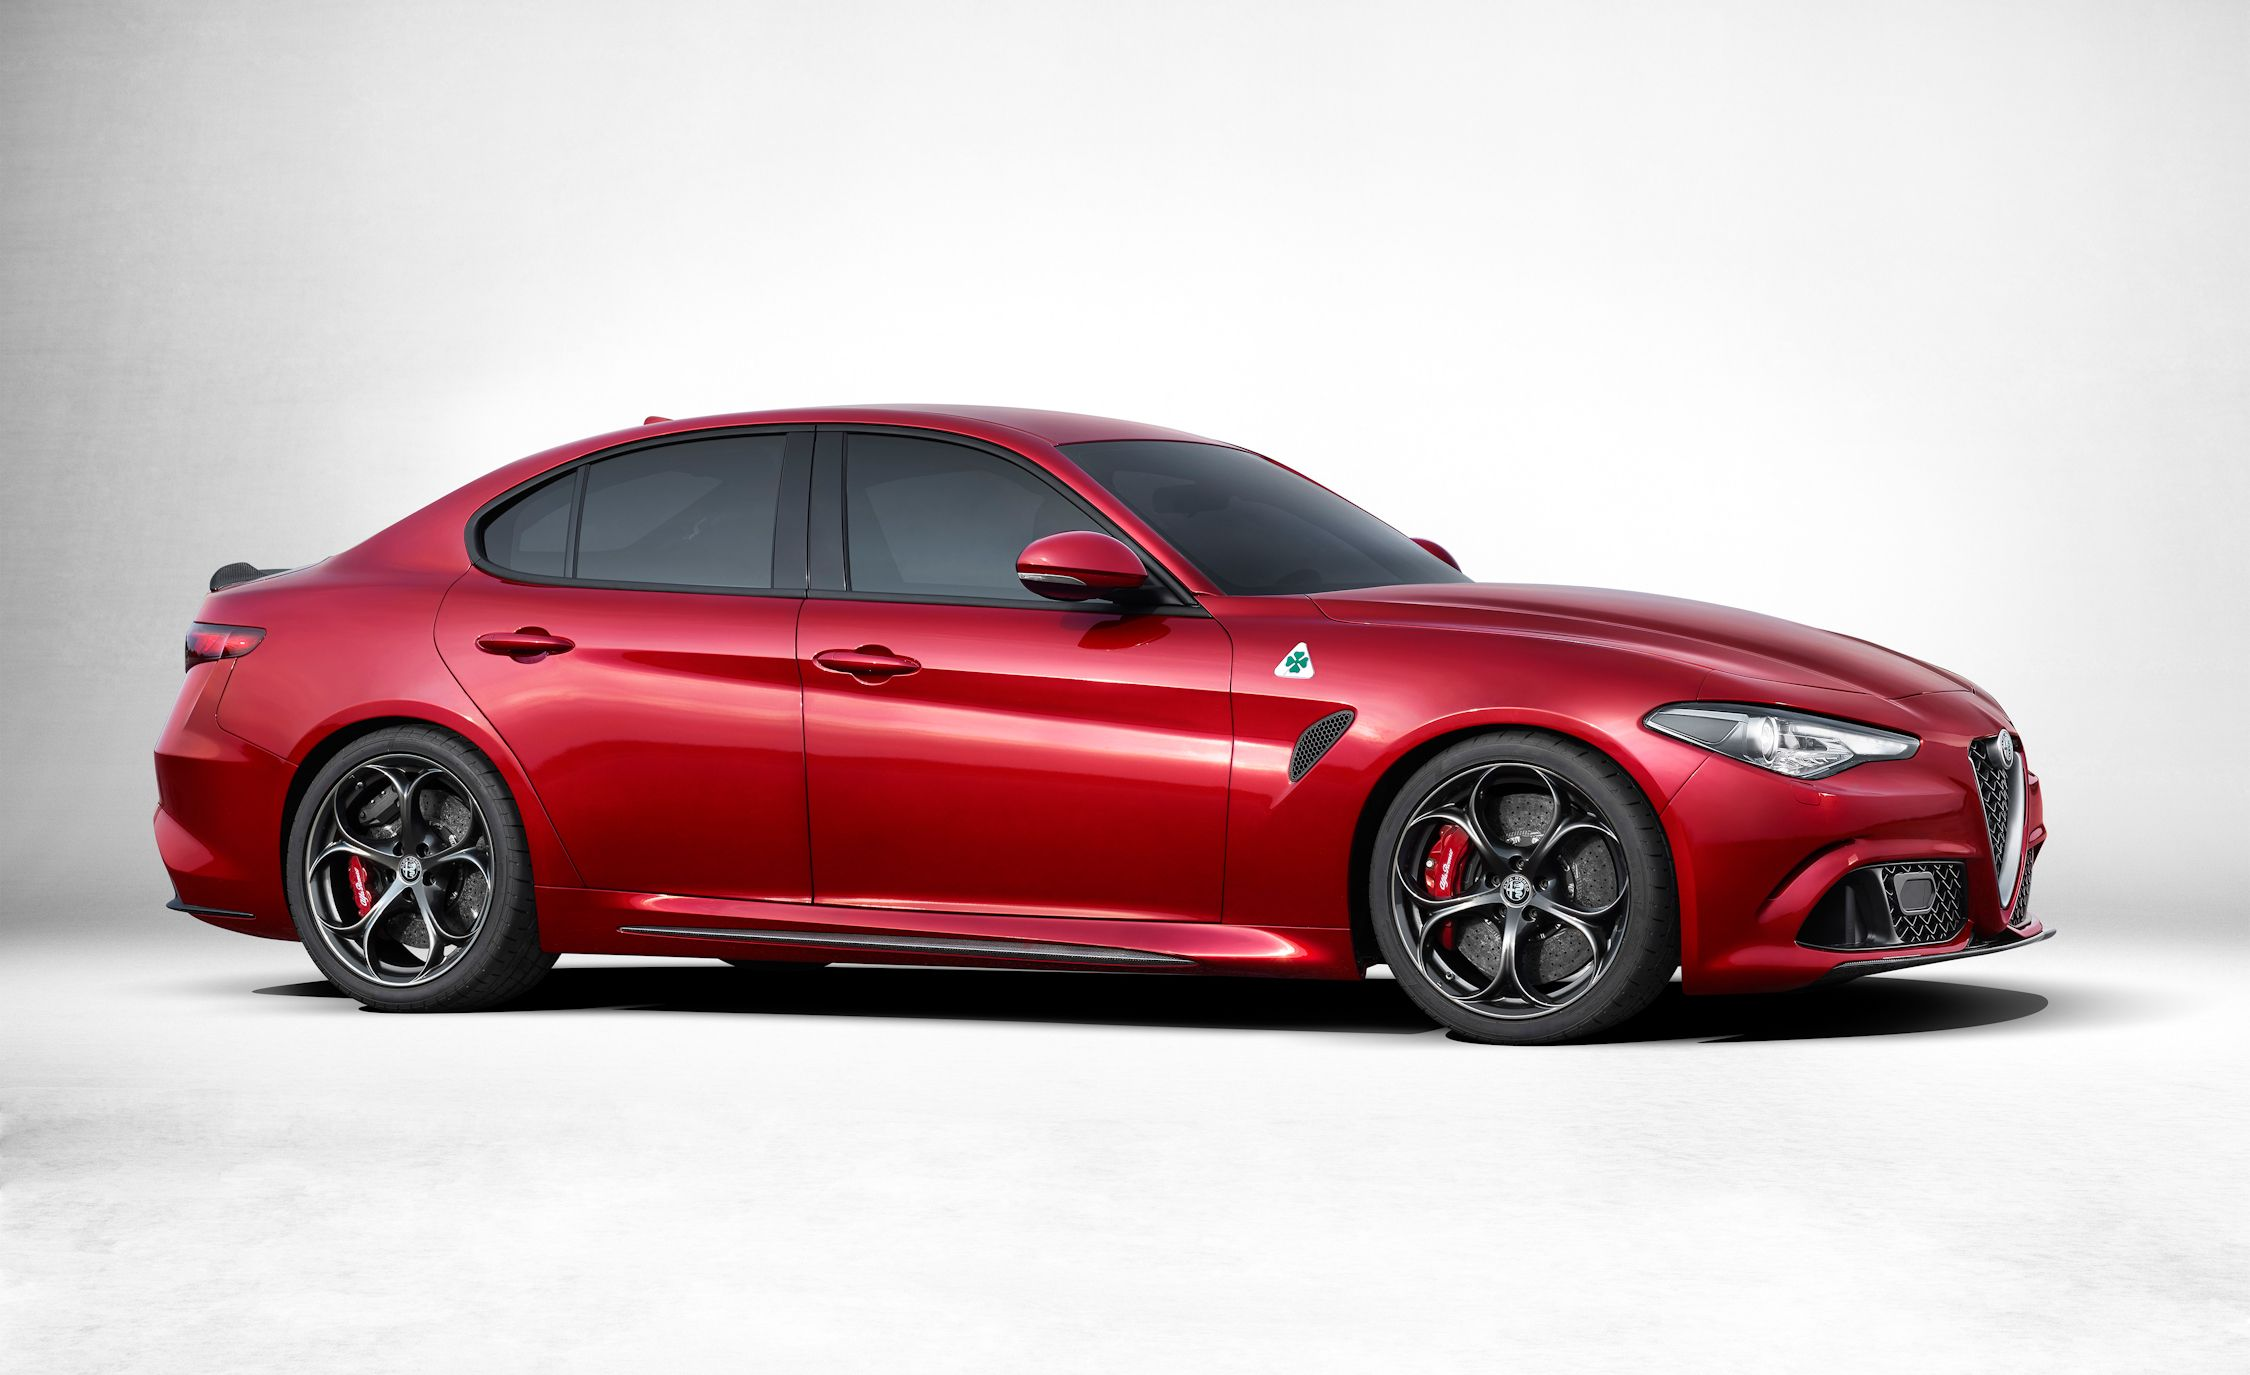 2019 alfa romeo giulia reviews | alfa romeo giulia price, photos